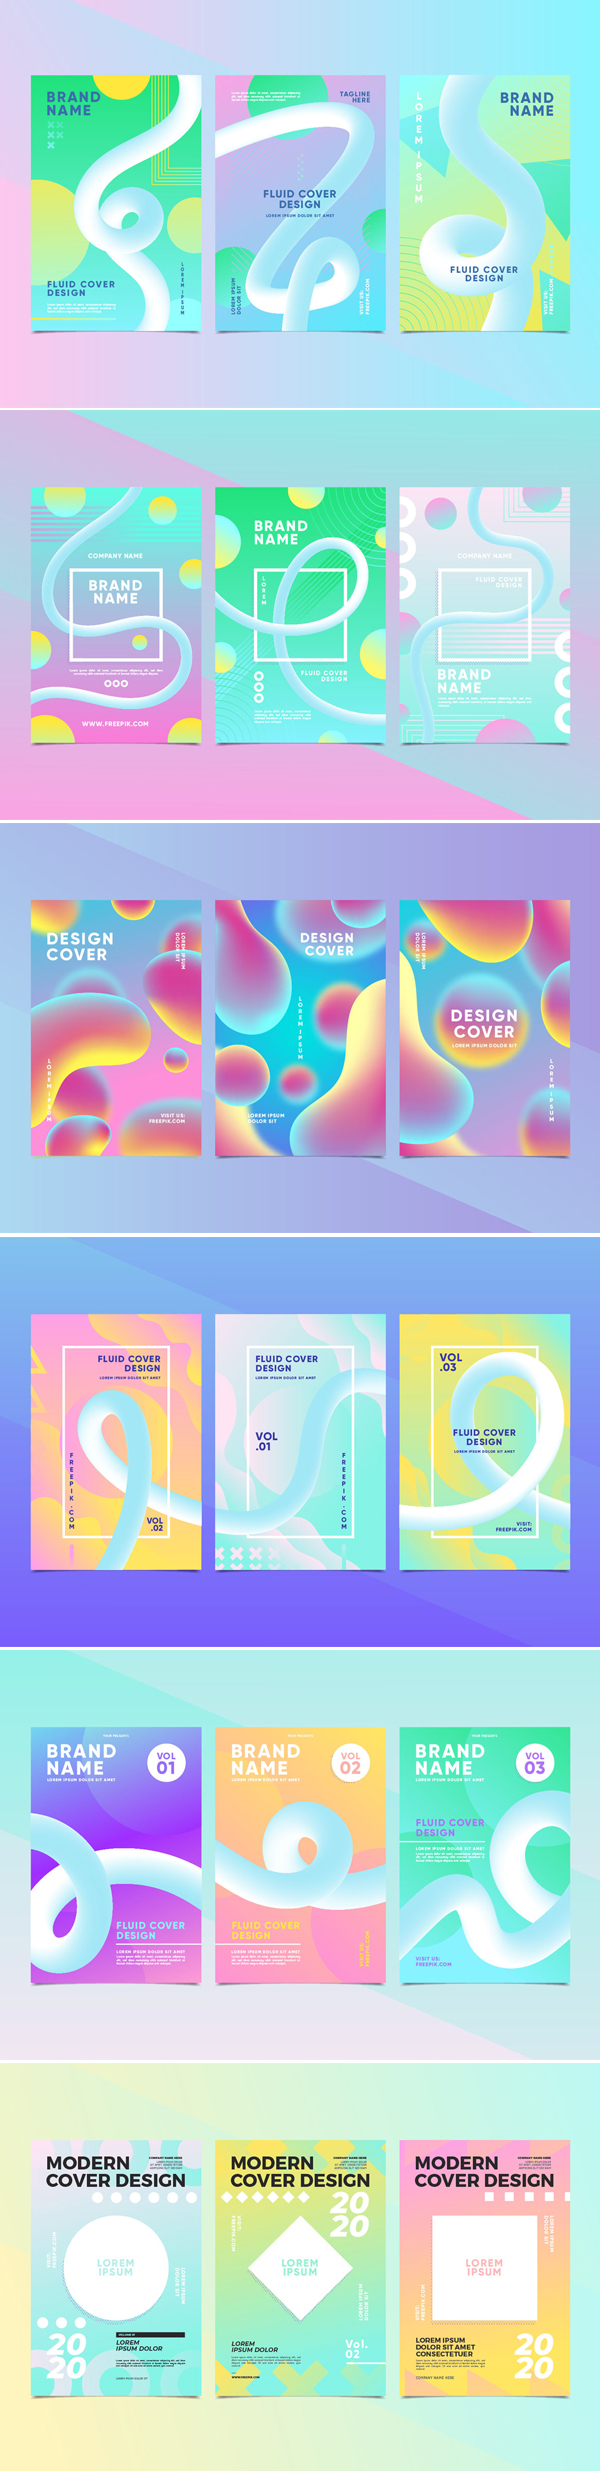 Free Abstract Cover Collection Free Font